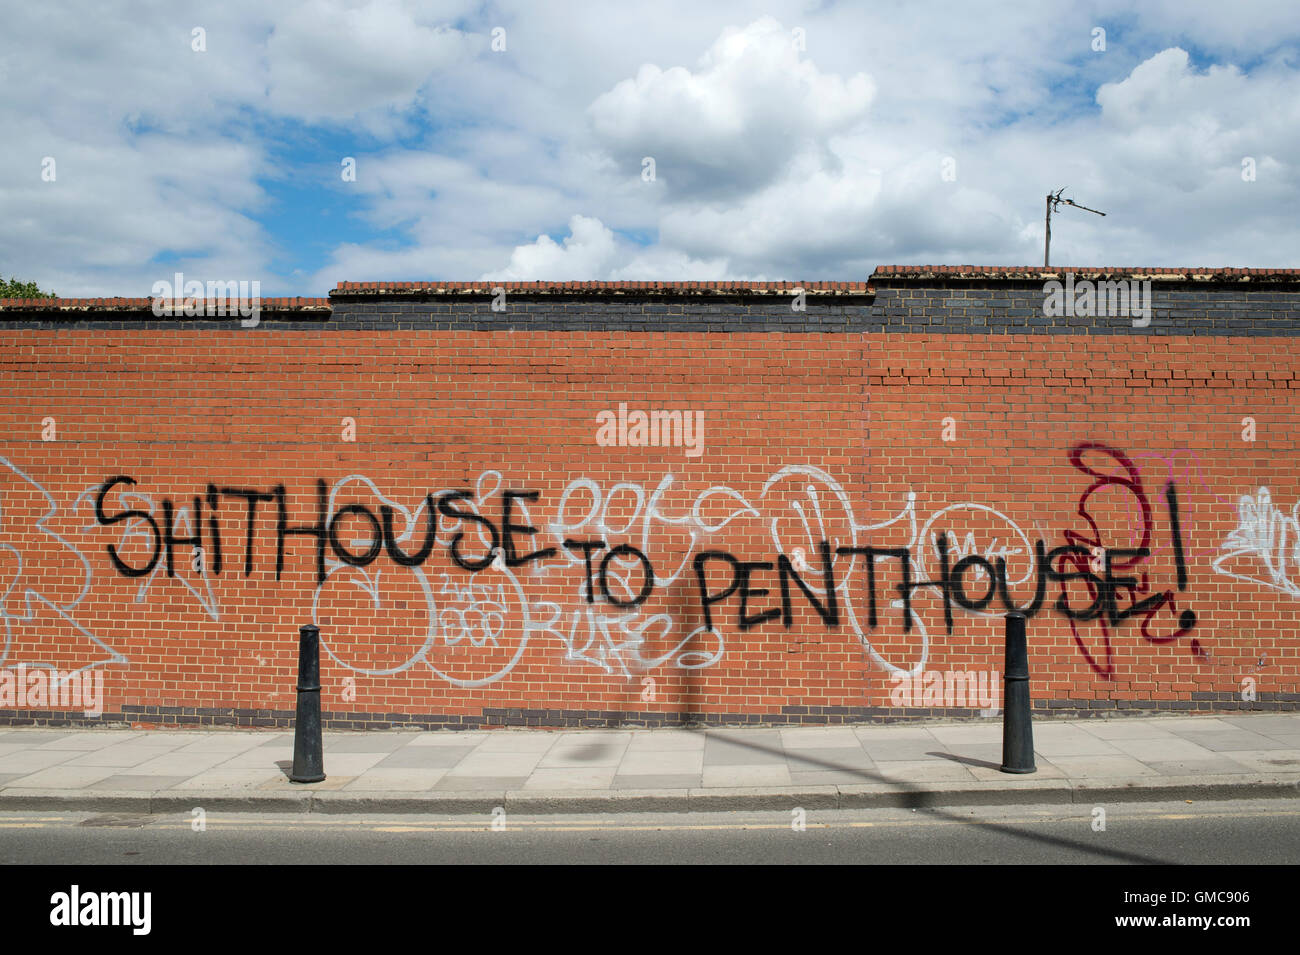 Hackney. Graffiti mocking new arrivals to the area. It says 'Shithouse to penthouse'. - Stock Image